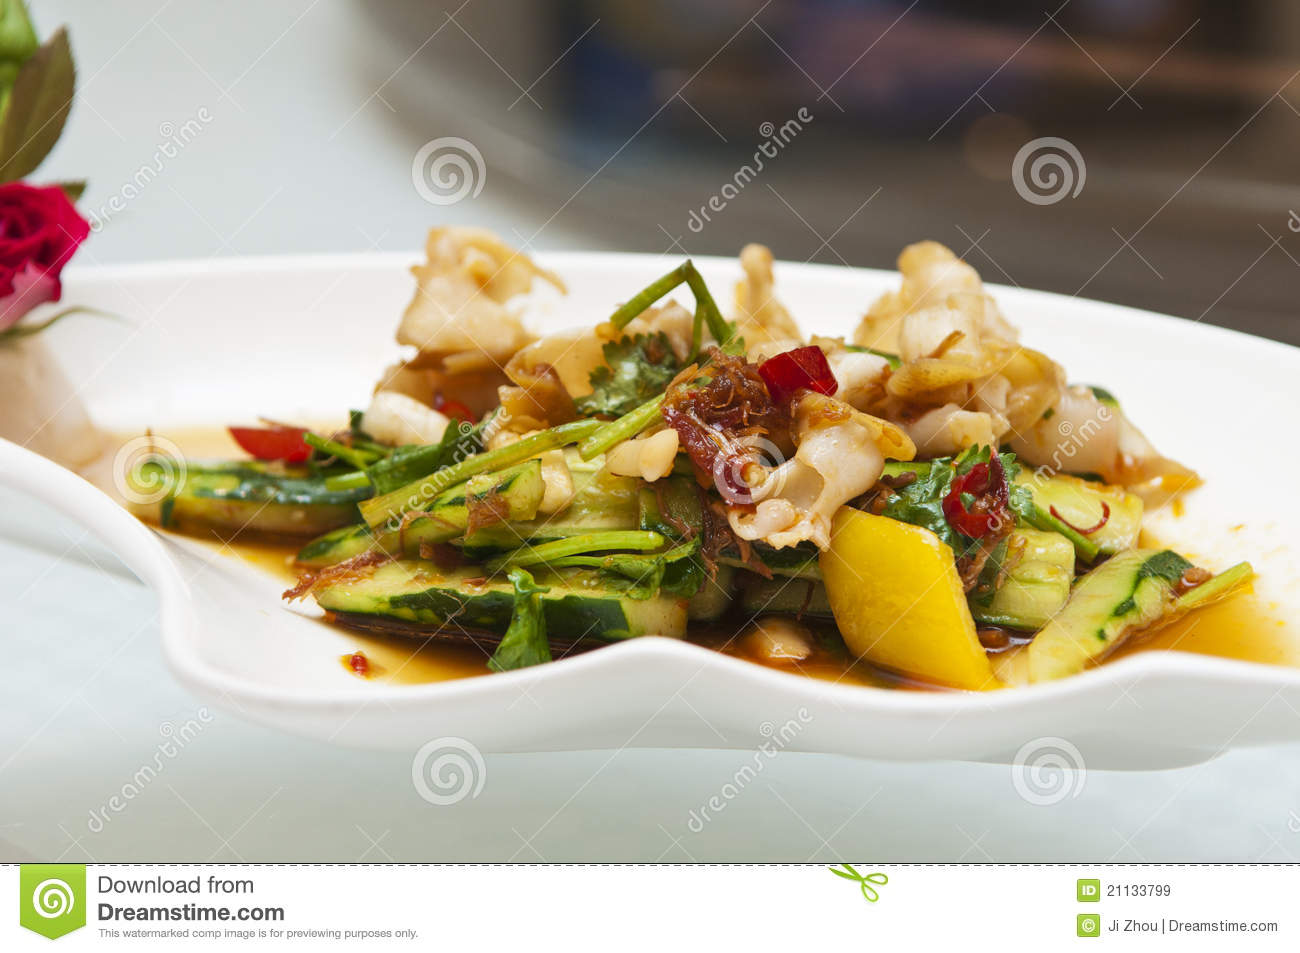 Chinese cuisine royalty free stock images image 21133799 for Ajk chinese cuisine